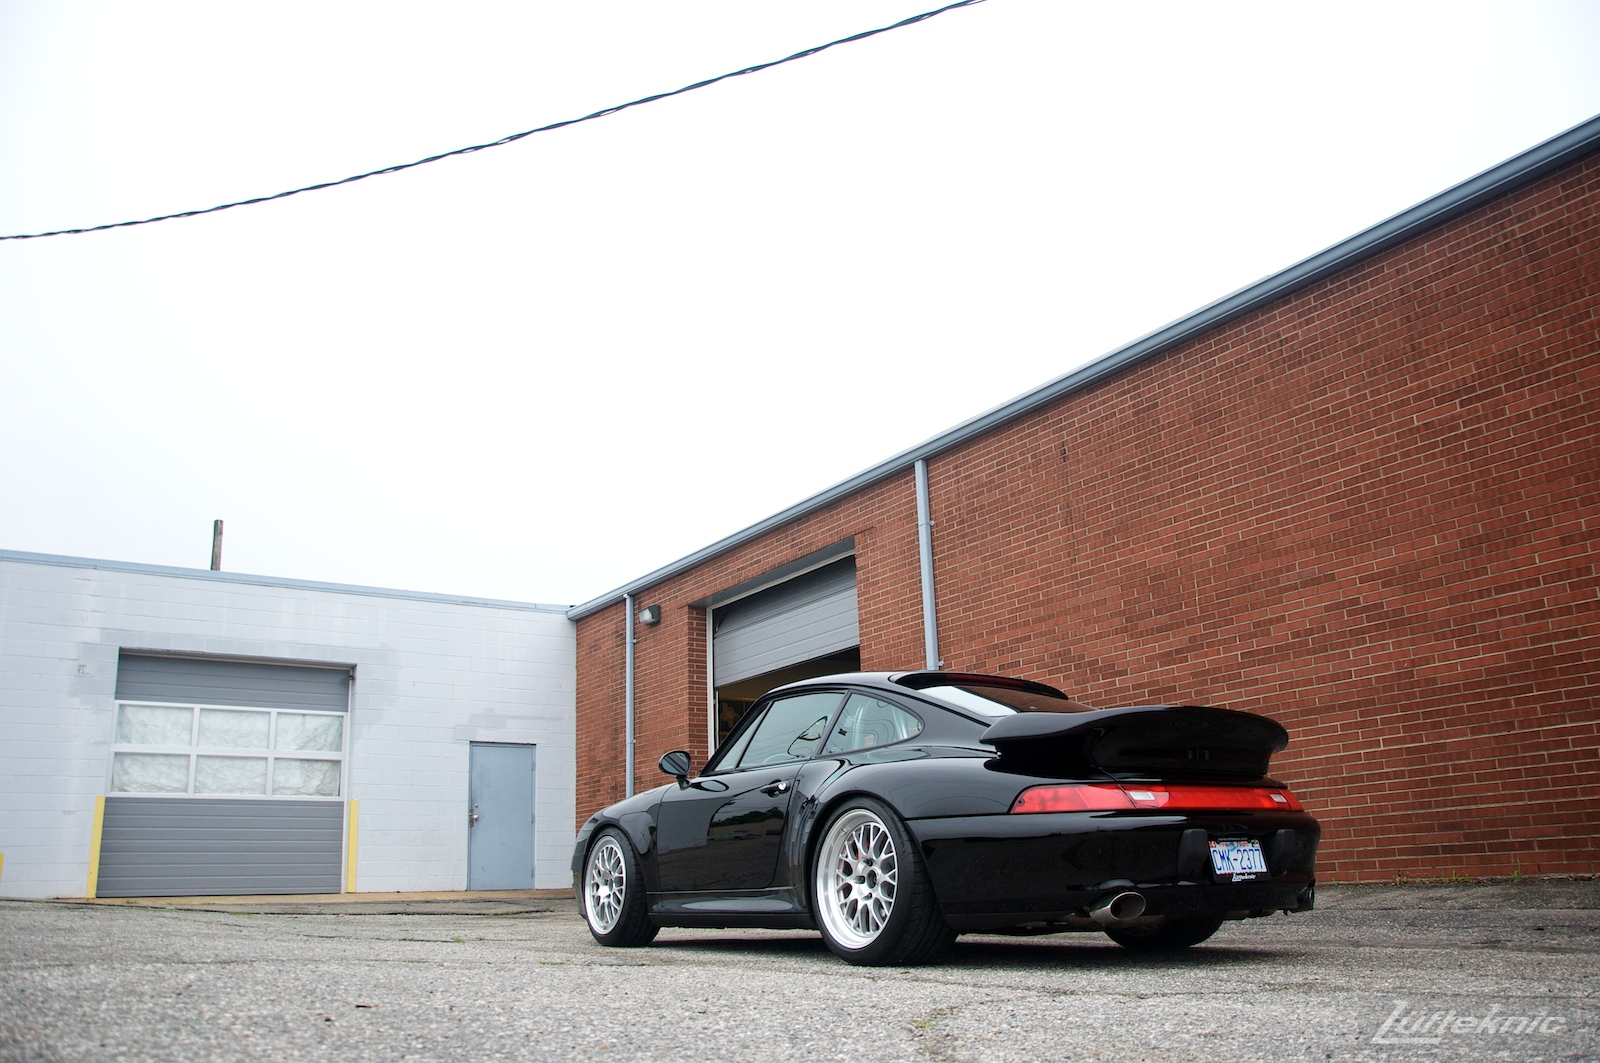 A black 993 Porsche Turbo GT2 conversion sits in the Lufteknic parking lot.